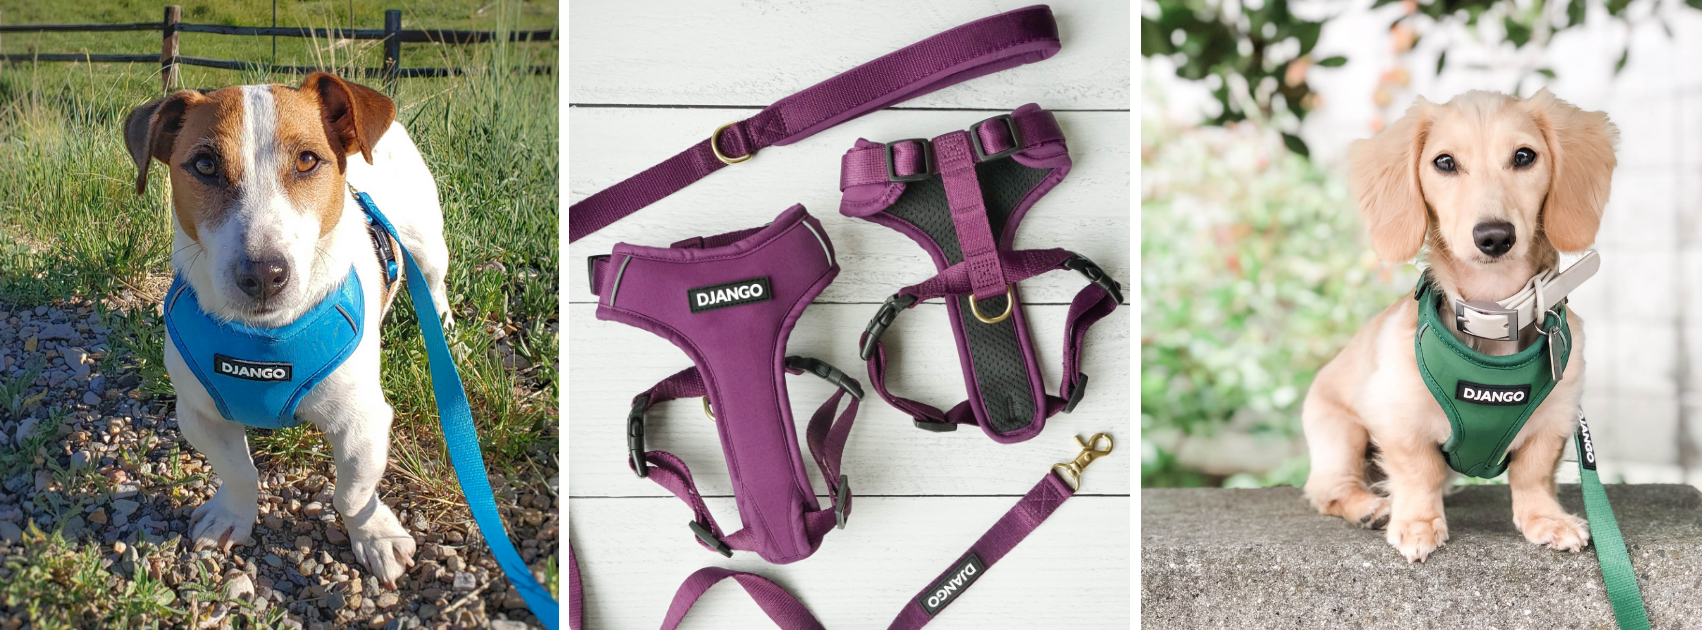 DJANGO Adventure Dog Harness and Leash Collection - djangobrand.com